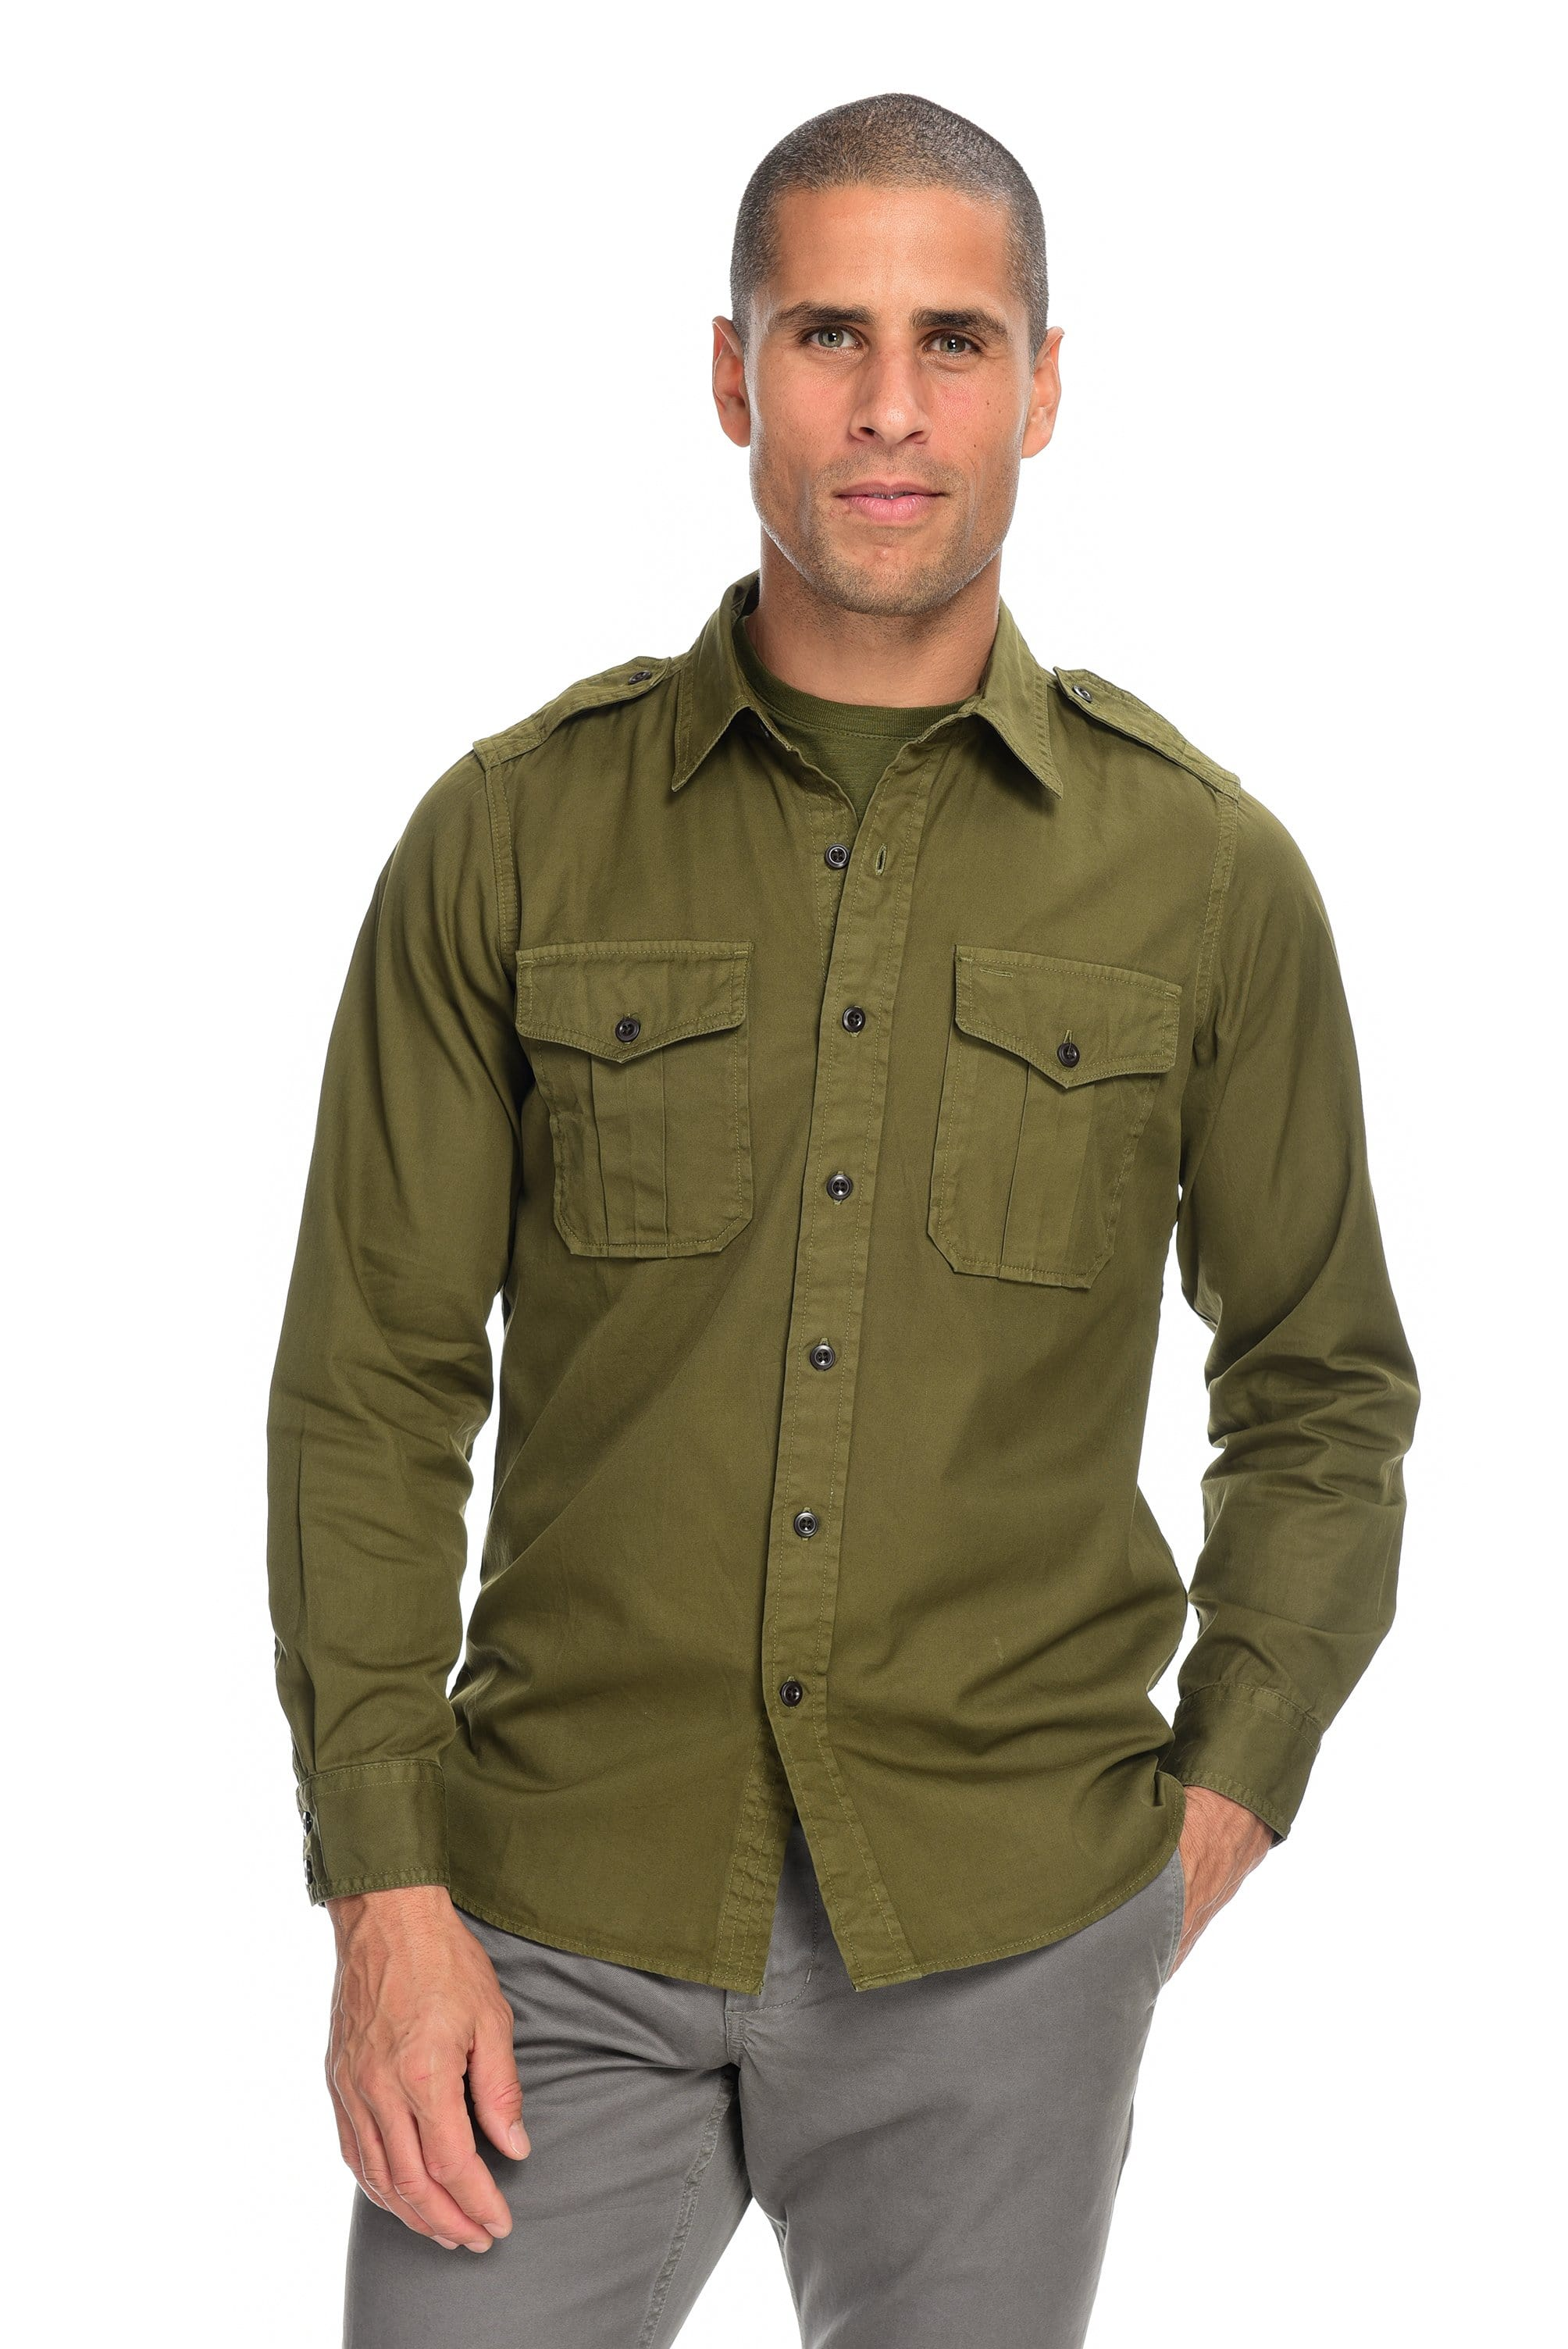 Officer and Gentlemen Field Shirt